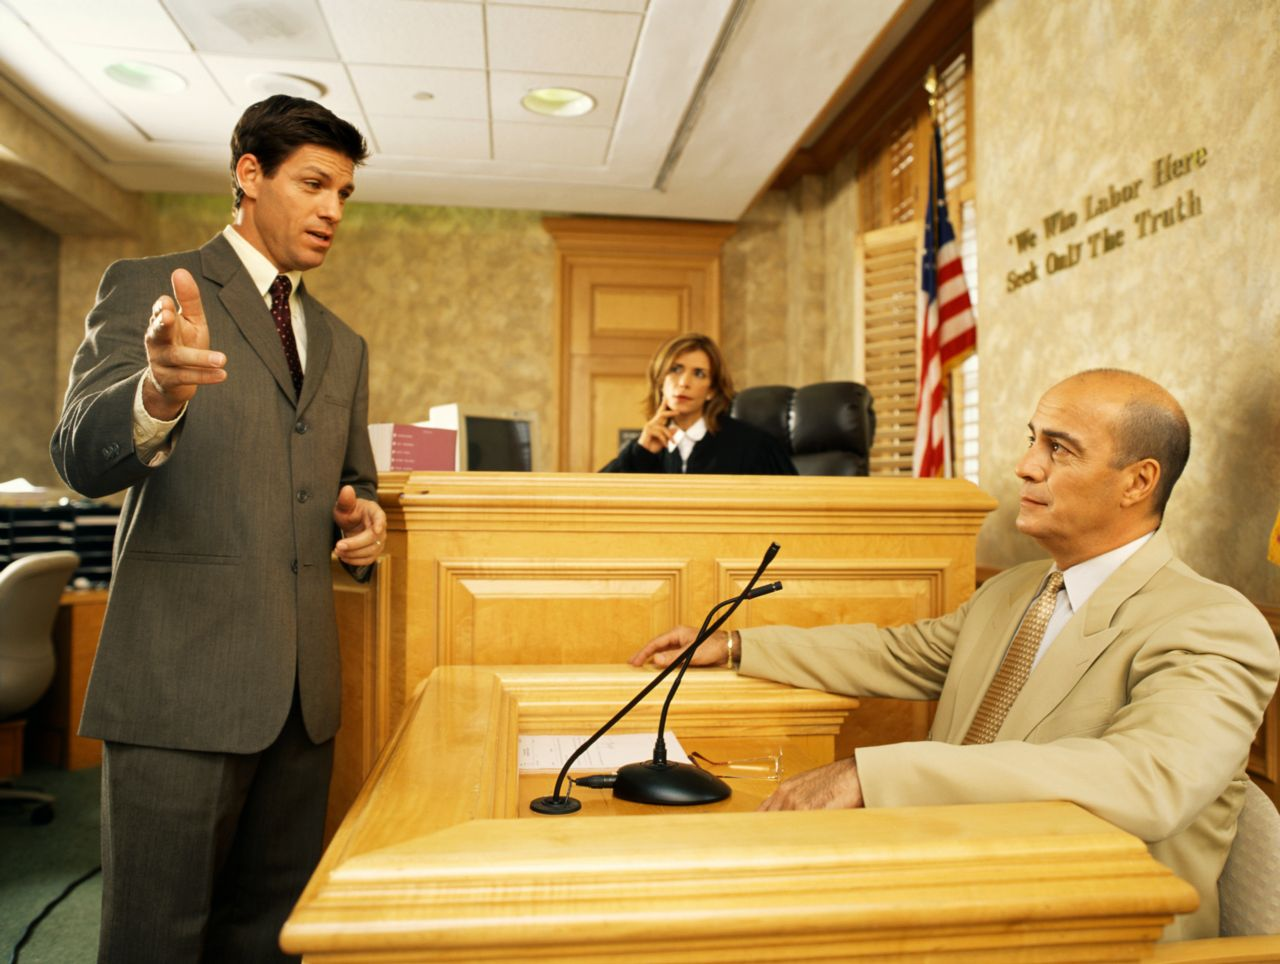 baltimore personal injury lawyer at witness stand